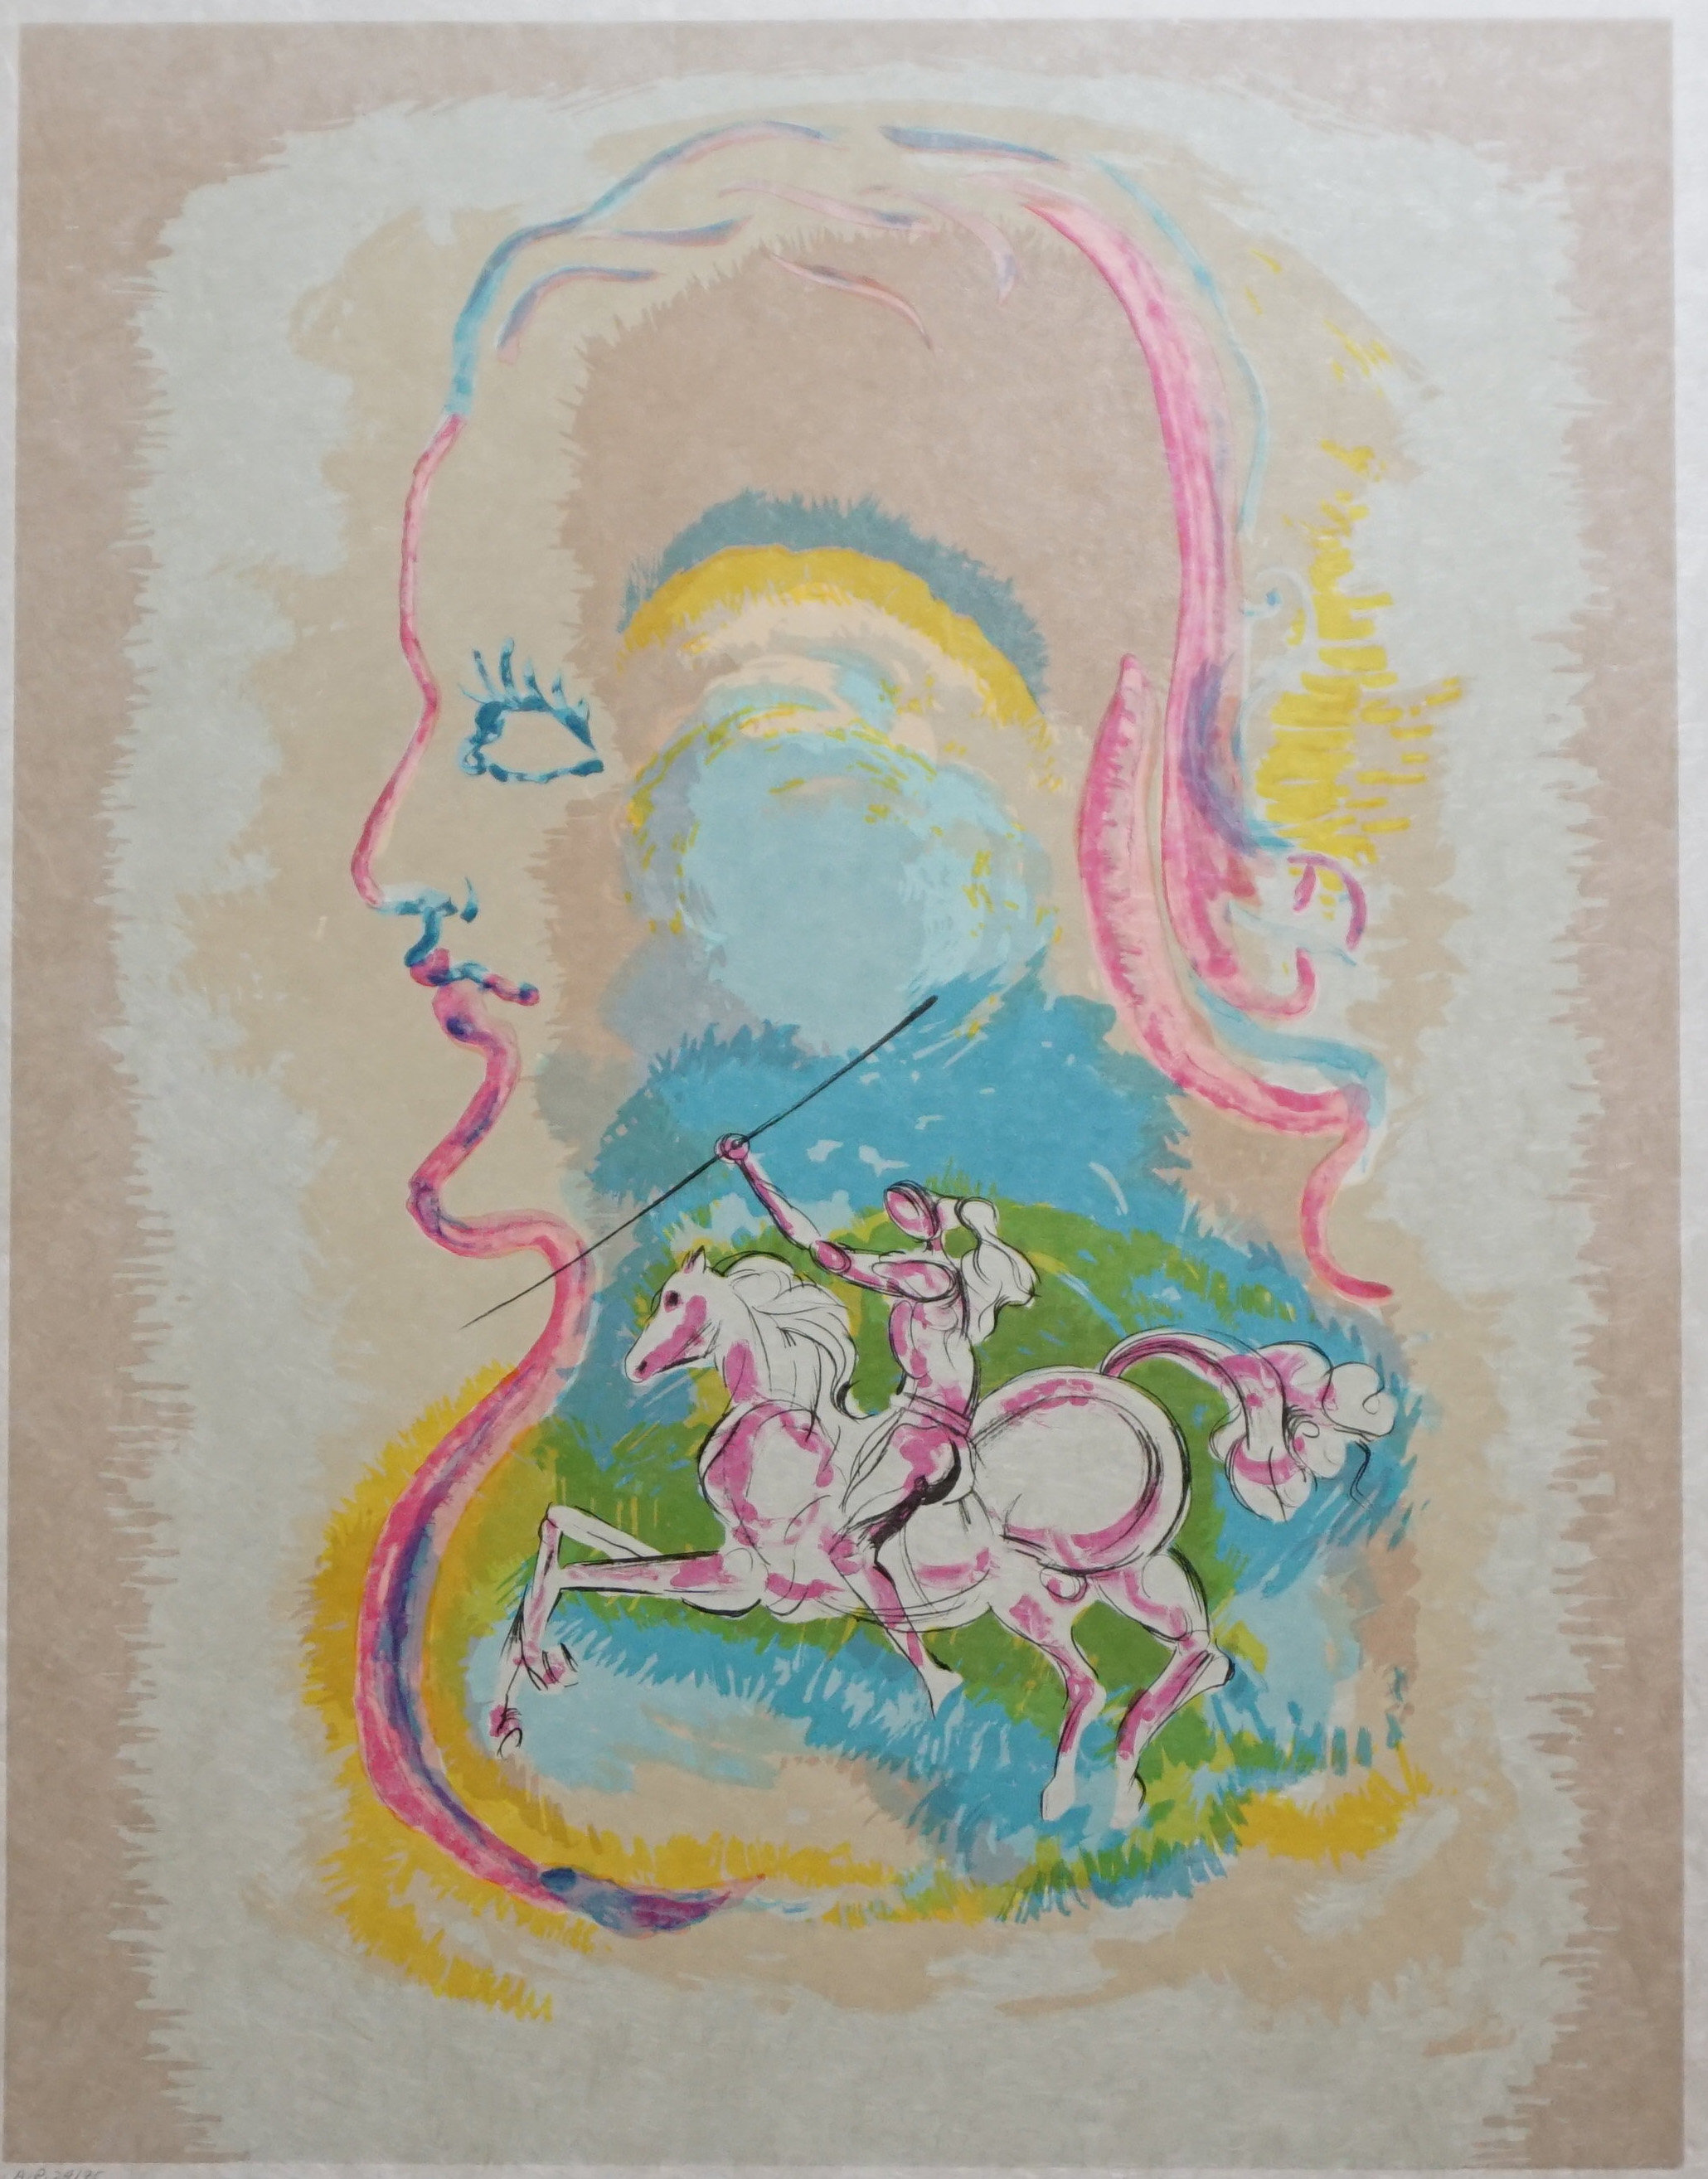 Dream of a Horseman AP 1979 by Salvador Dali